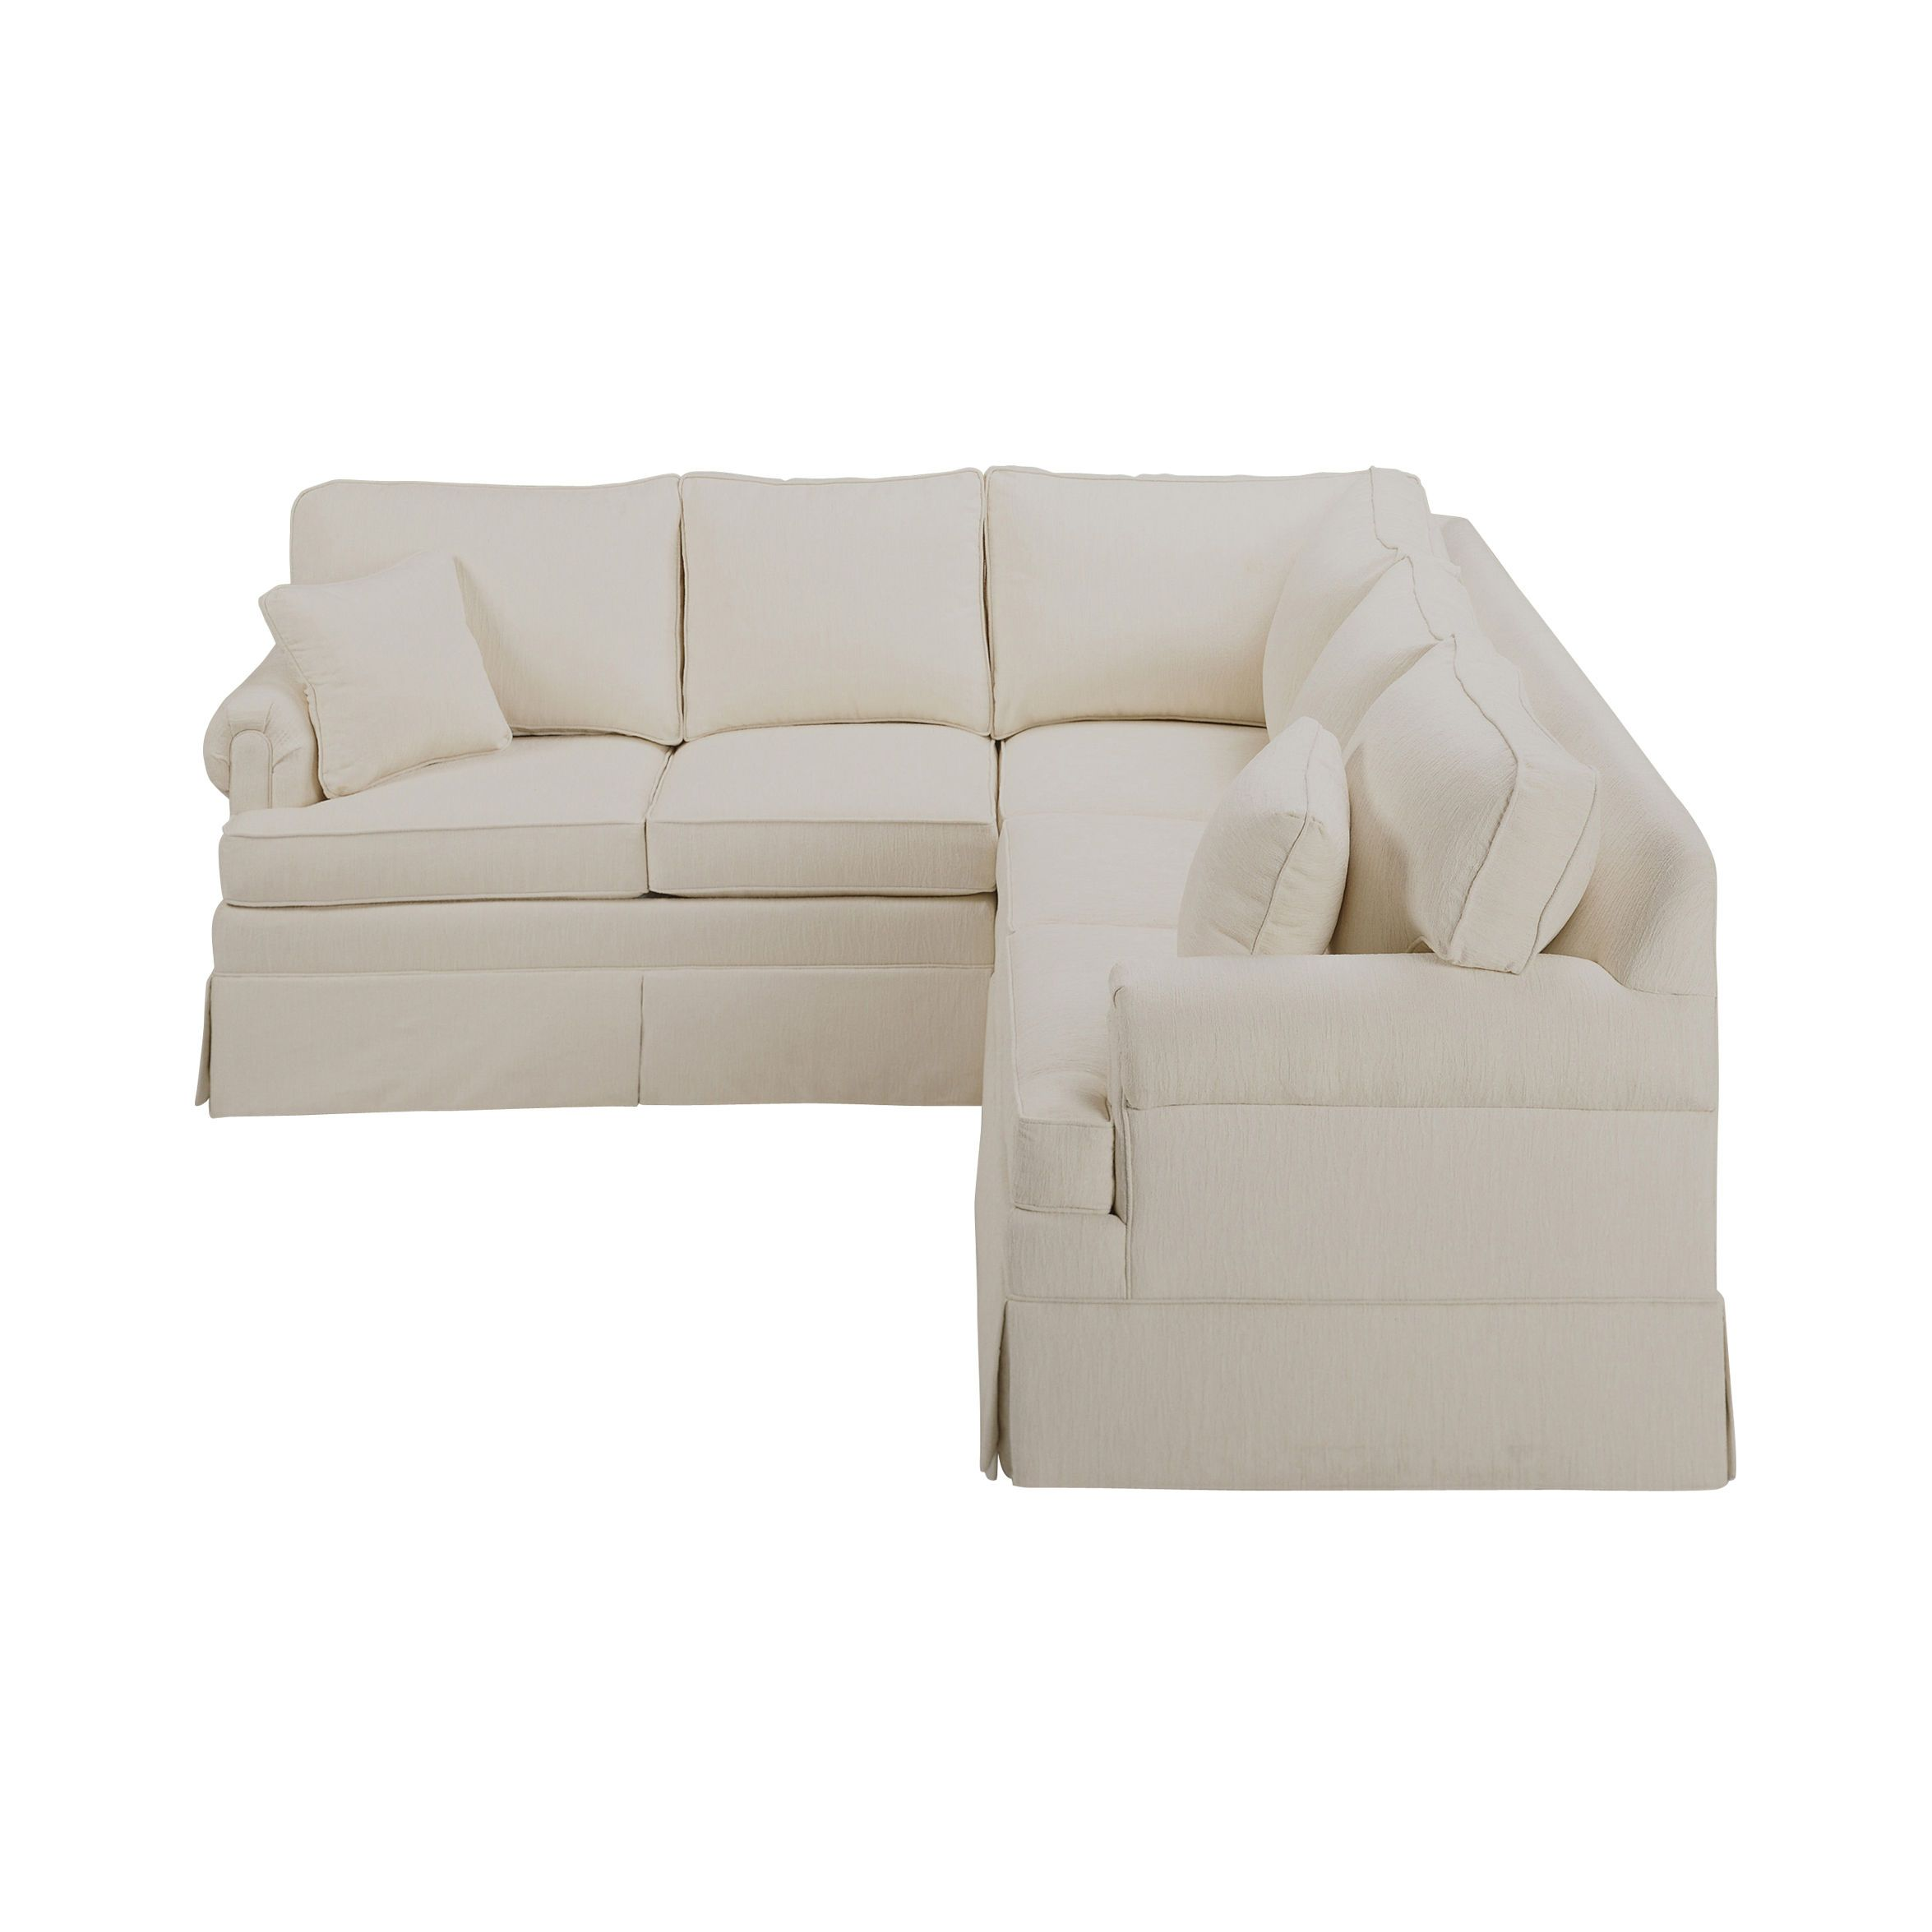 Ethan Allen Leather Sectional